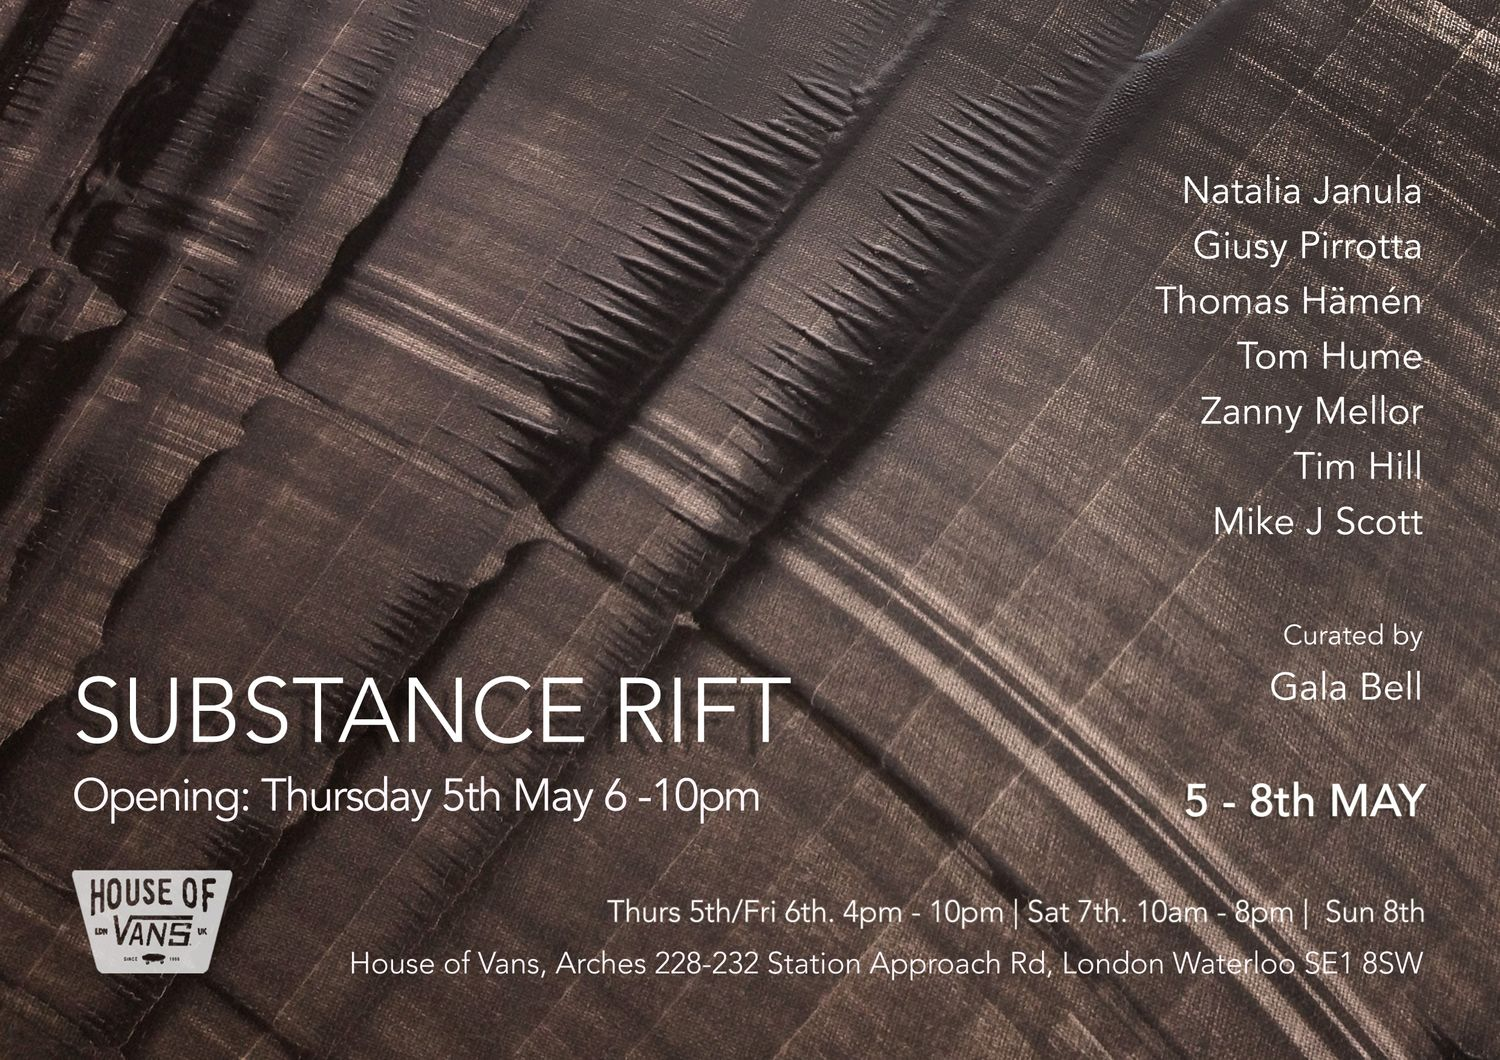 Substance Rift - Exhibition at House of Vans London in London